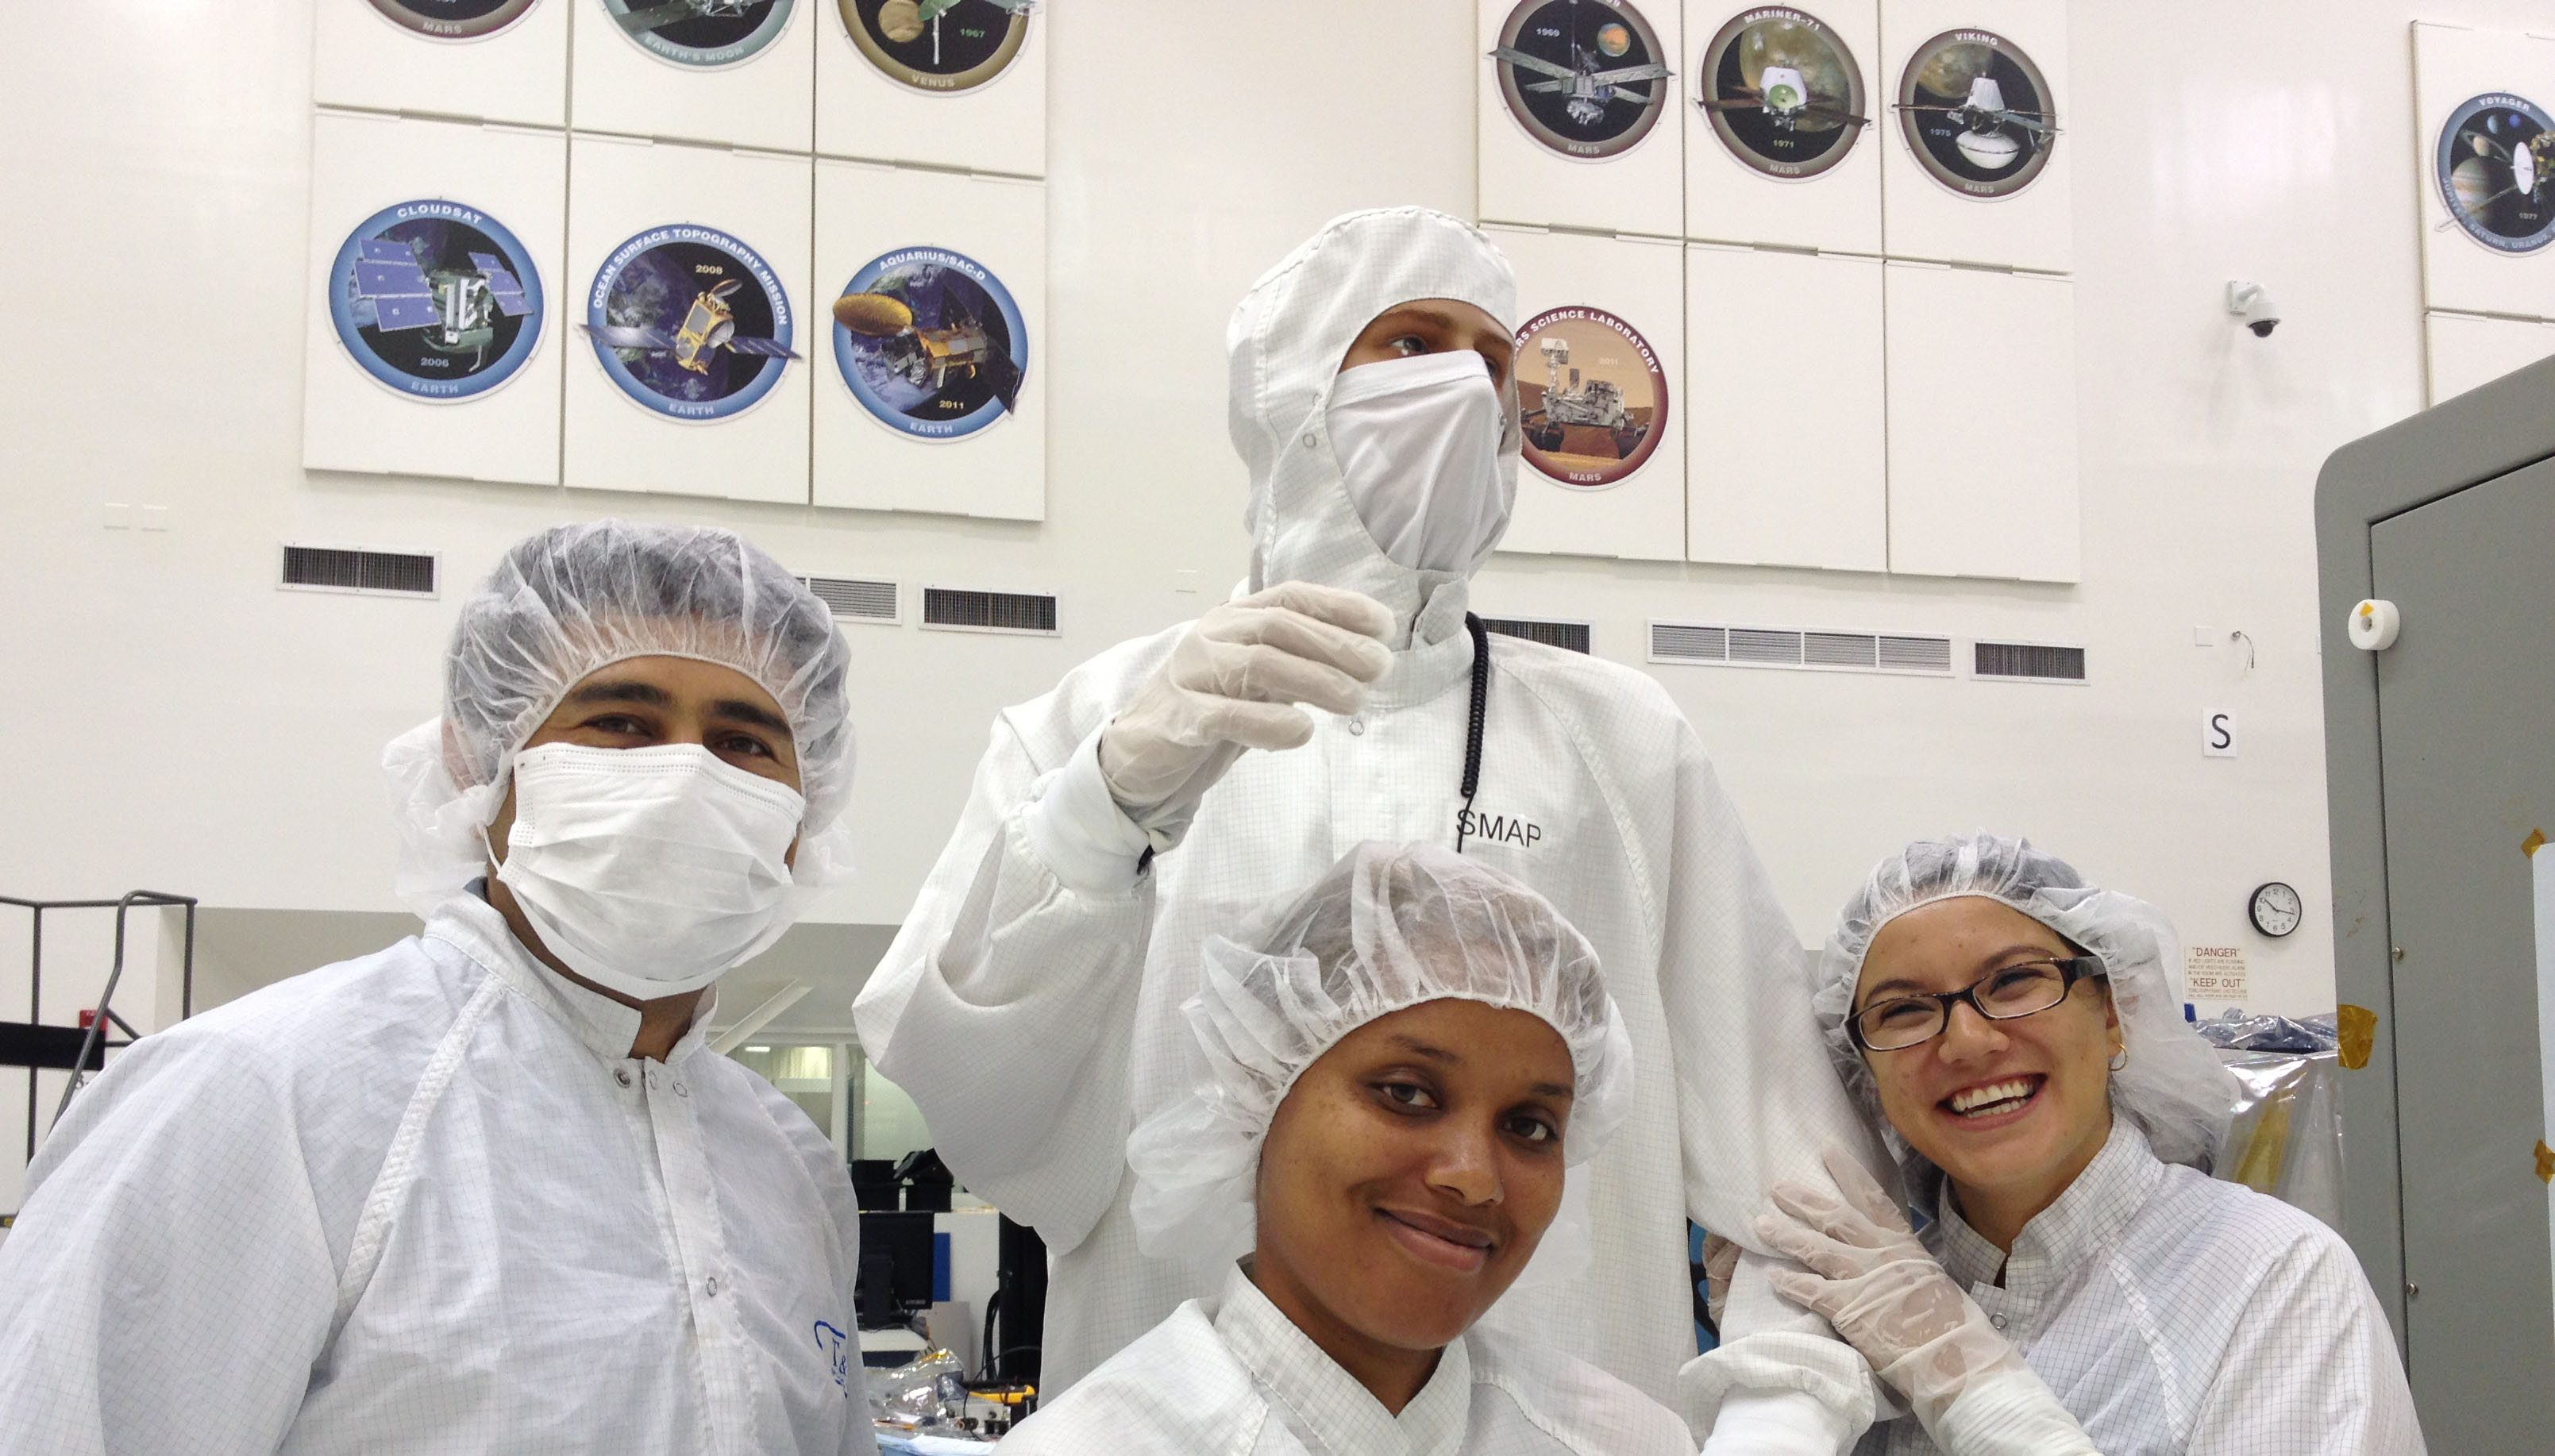 Interns at JPL